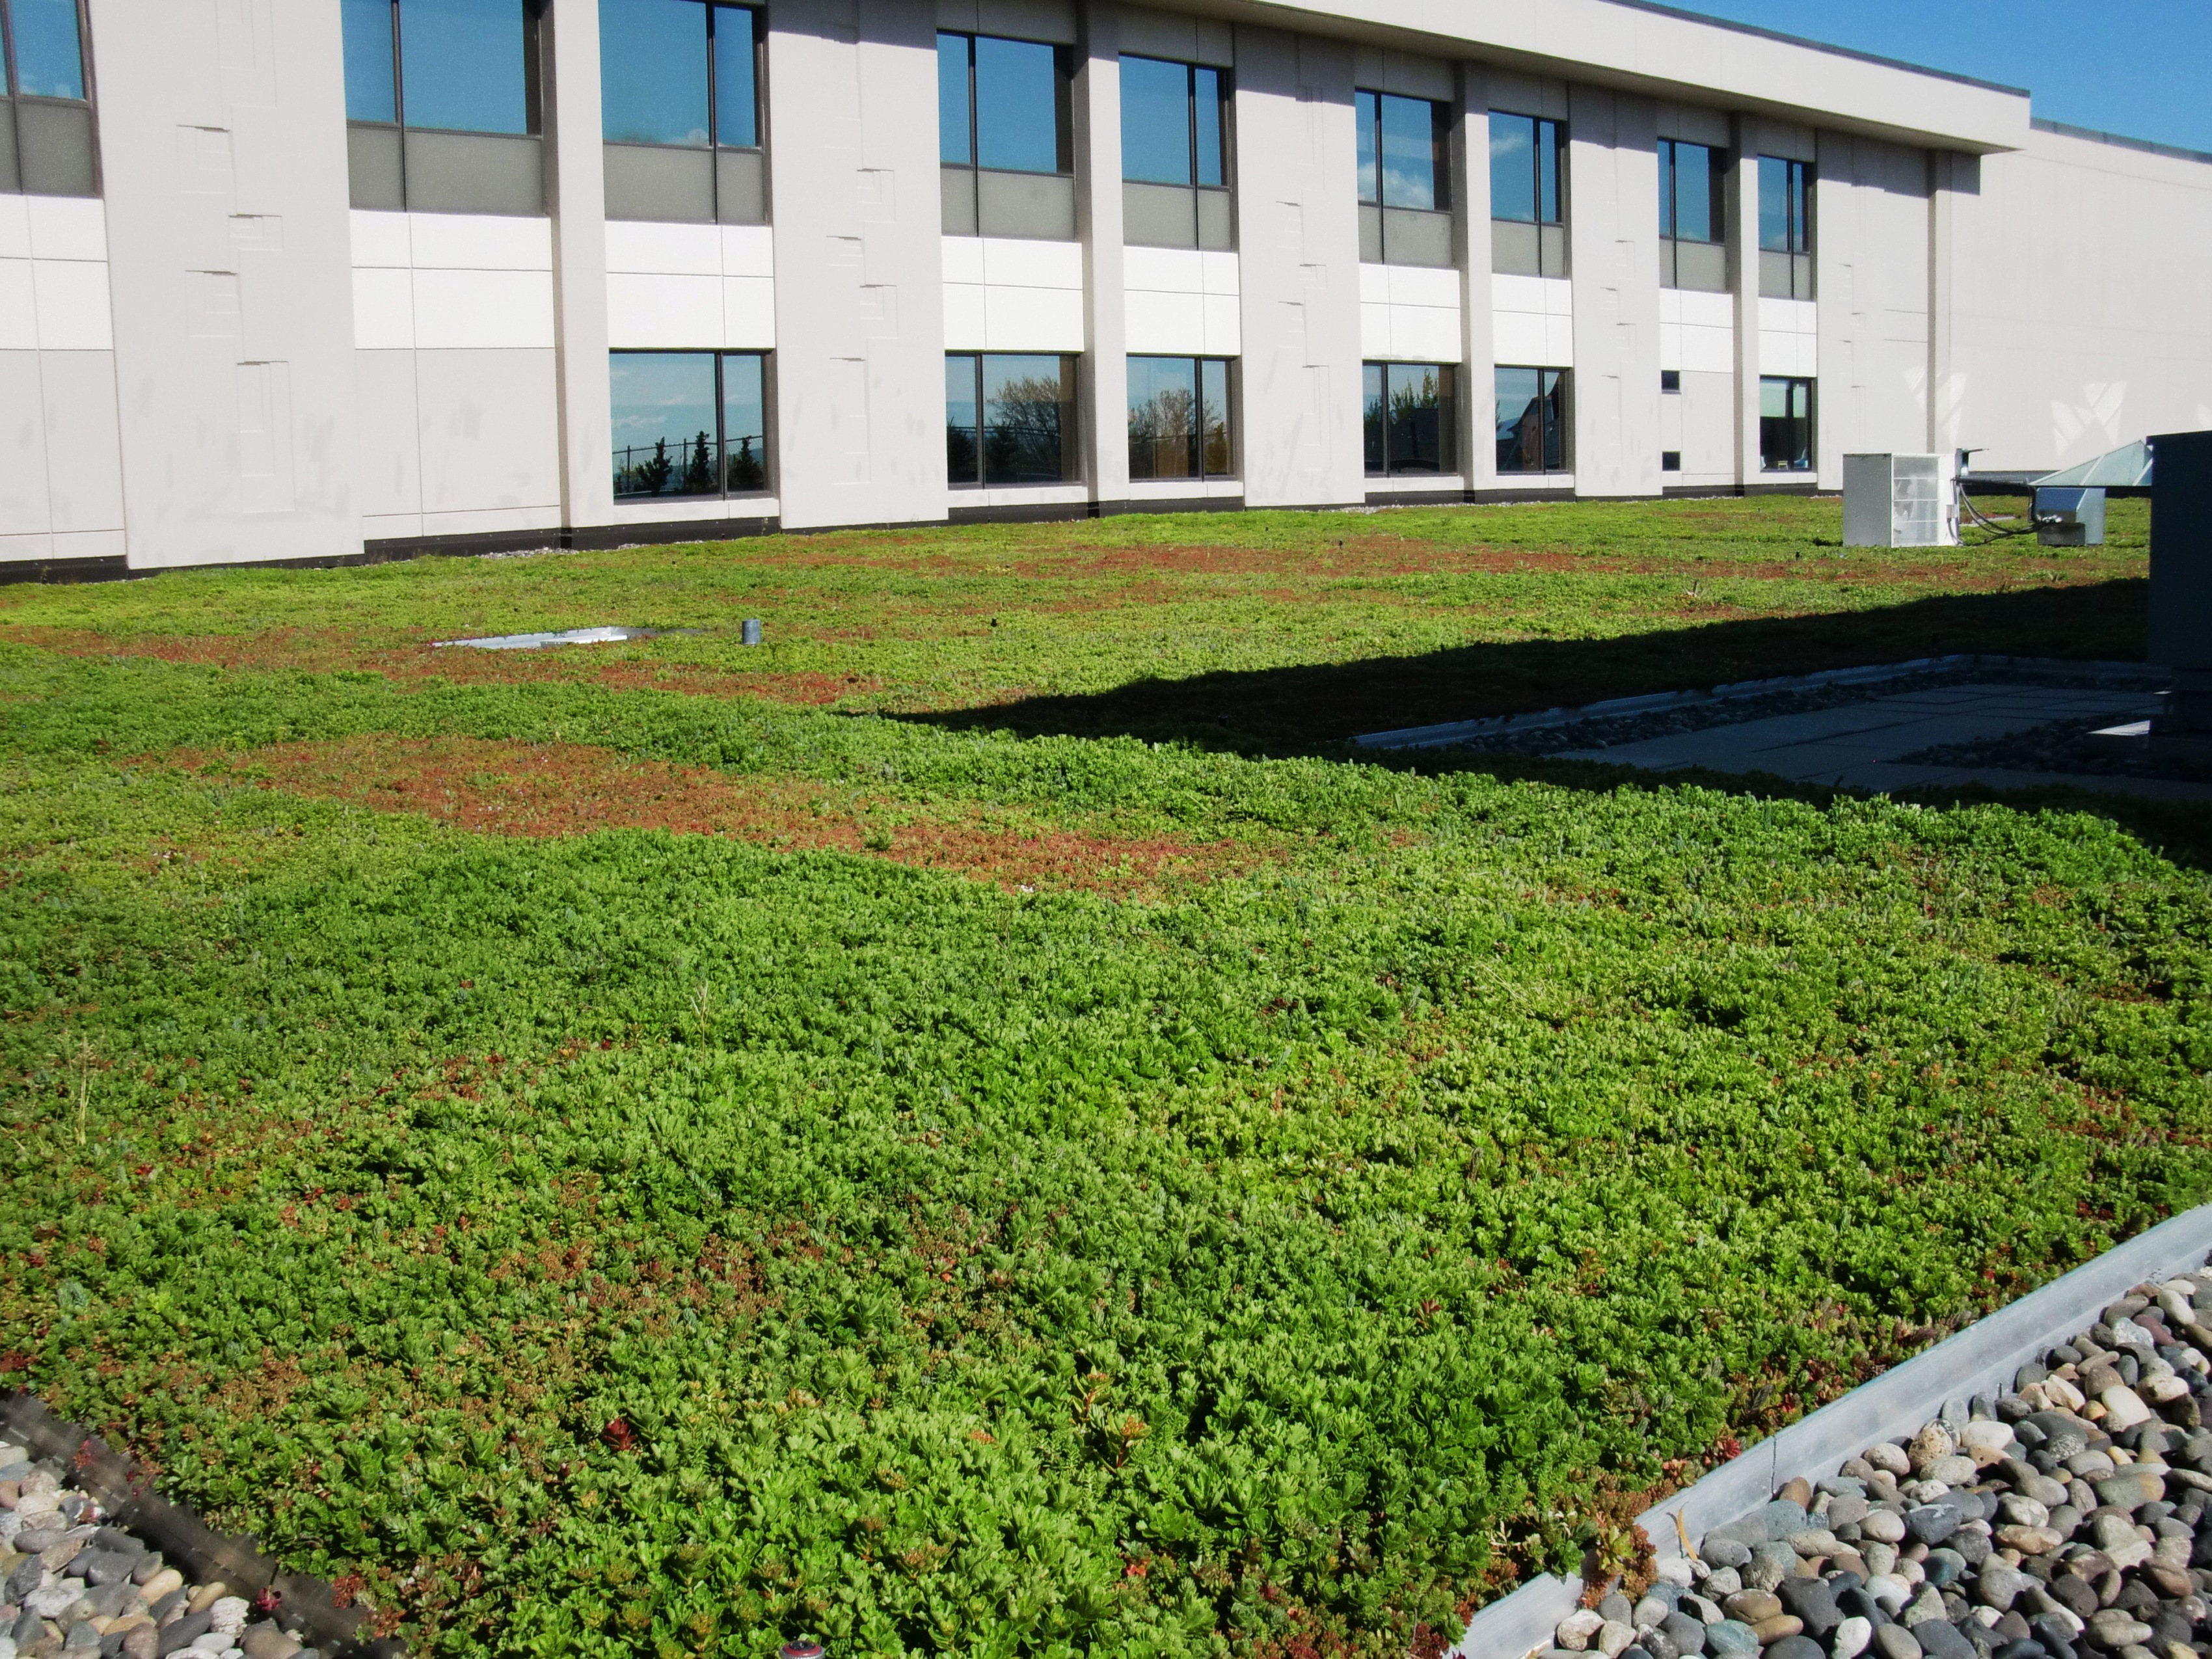 Providence St Mary Medical Center Greens Up With First